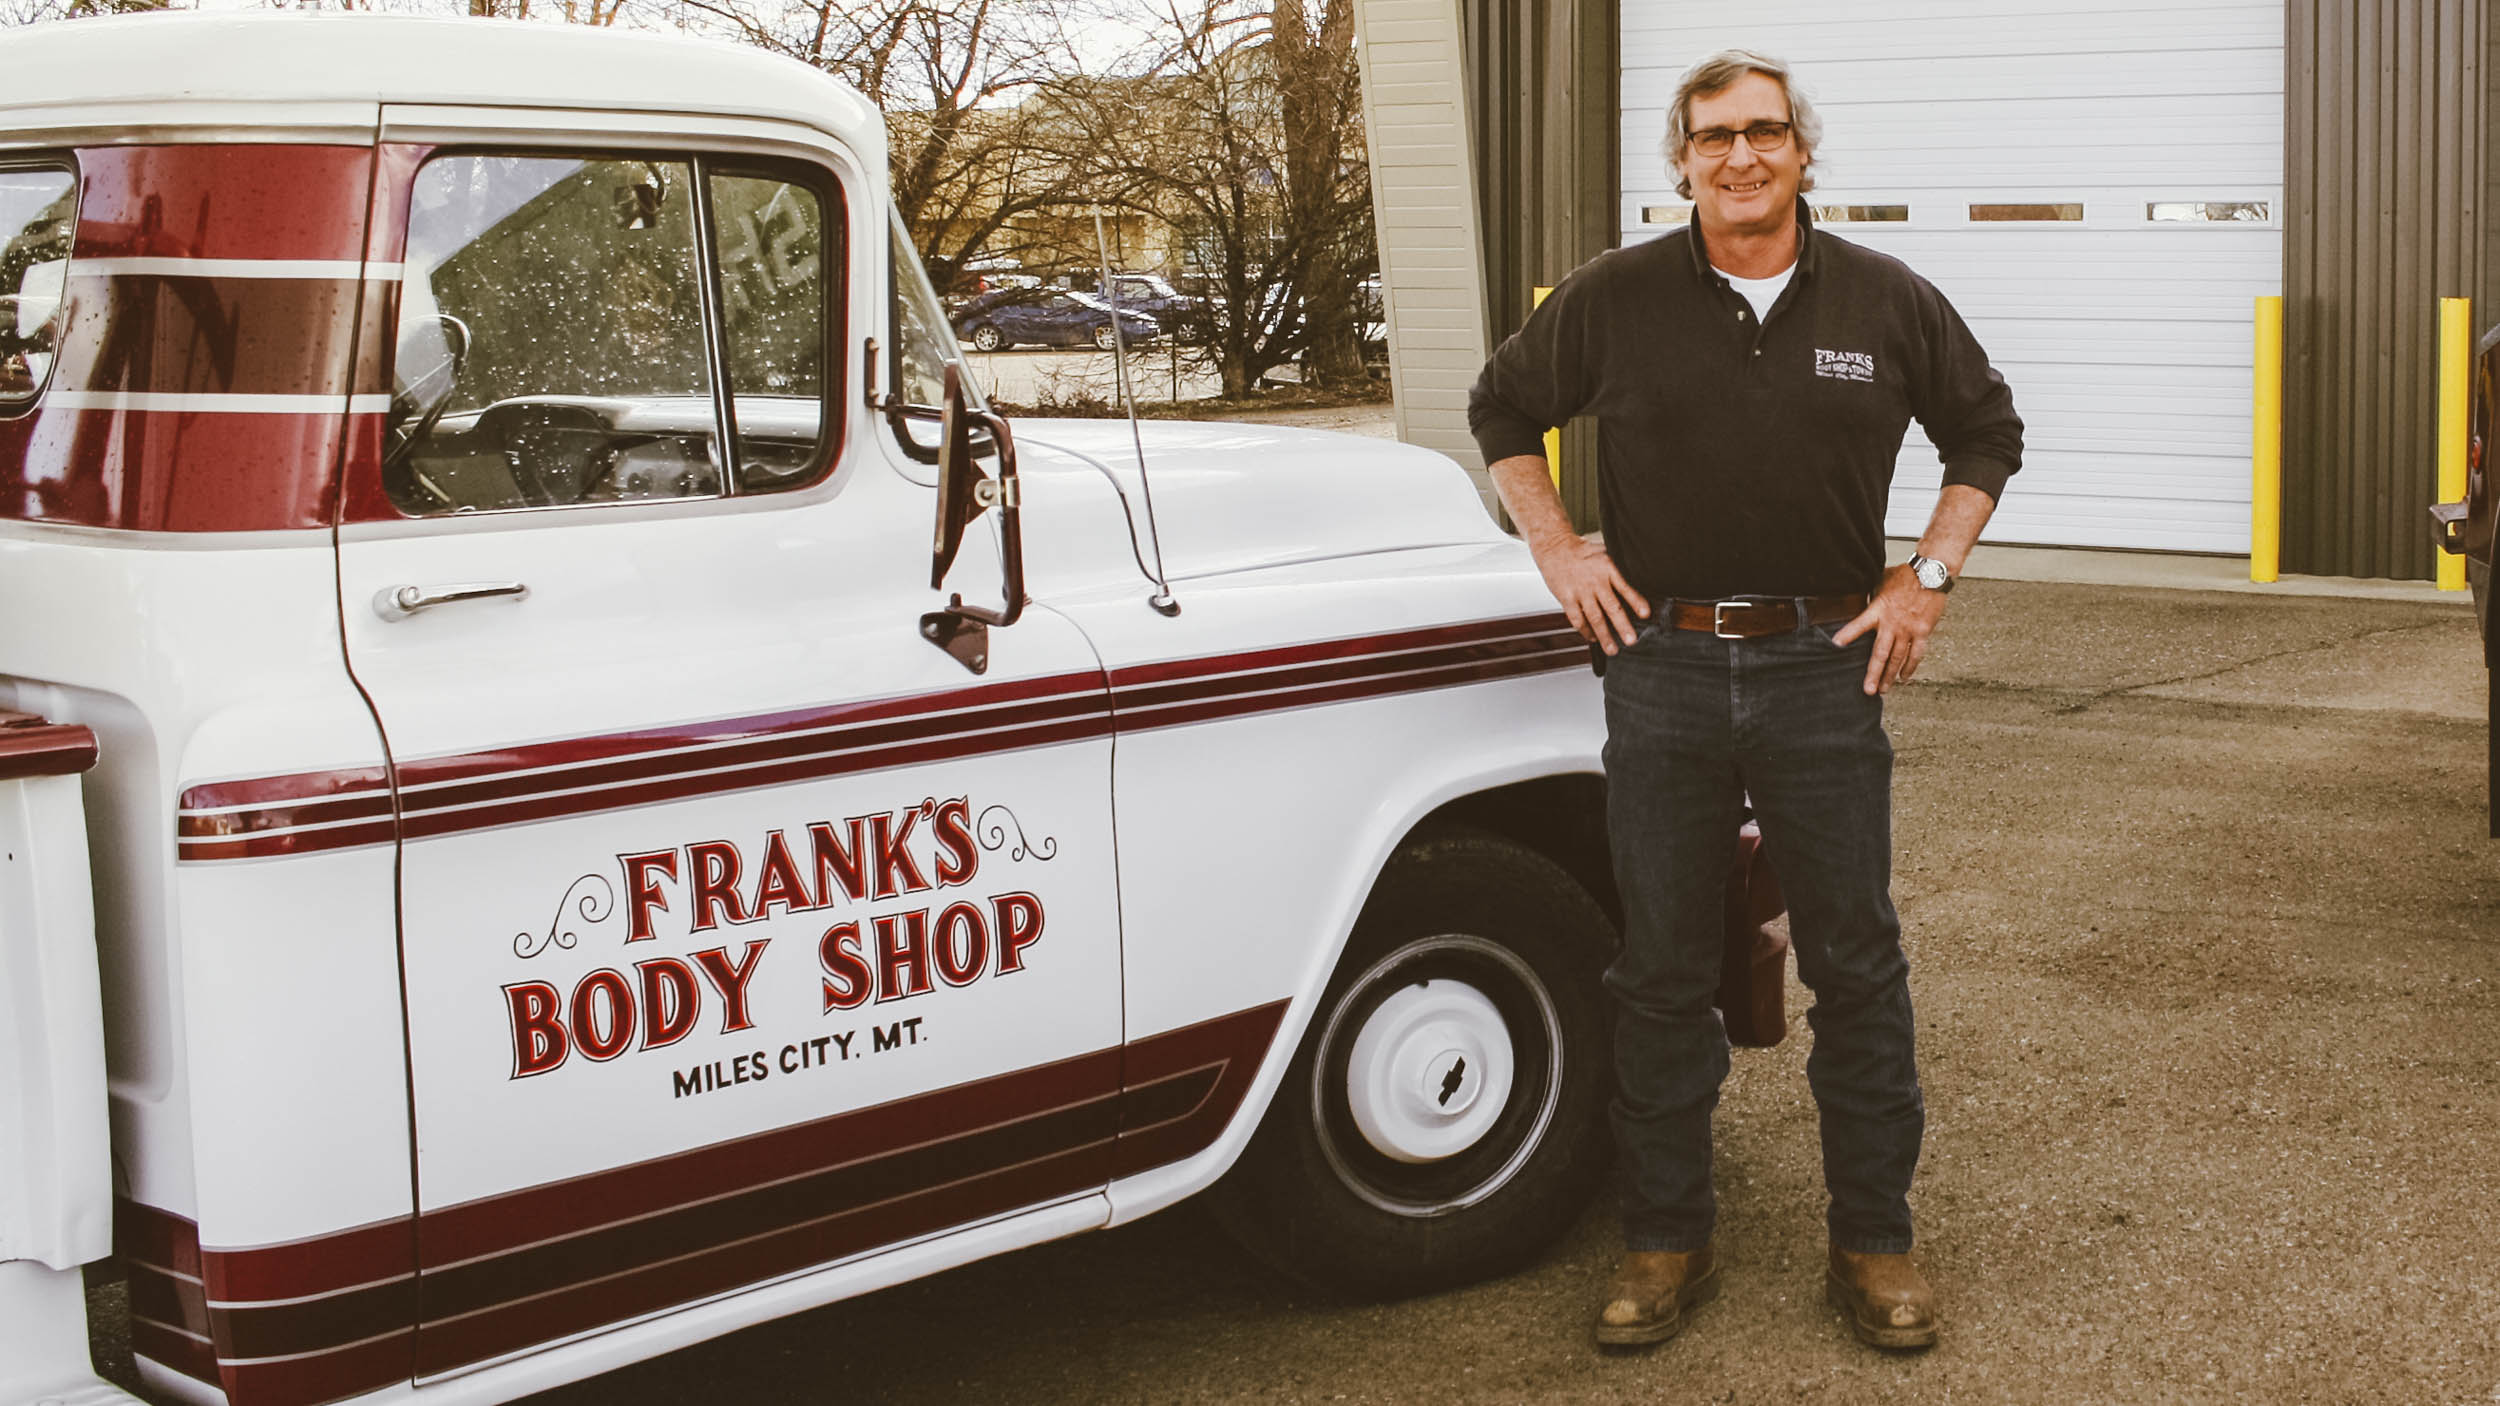 Tim Stoltz, who's been working in the body repair and towing business for 45 years, stands between the truck he started in when he was a boy and one of the five newer trucks his shop uses on a daily basis.